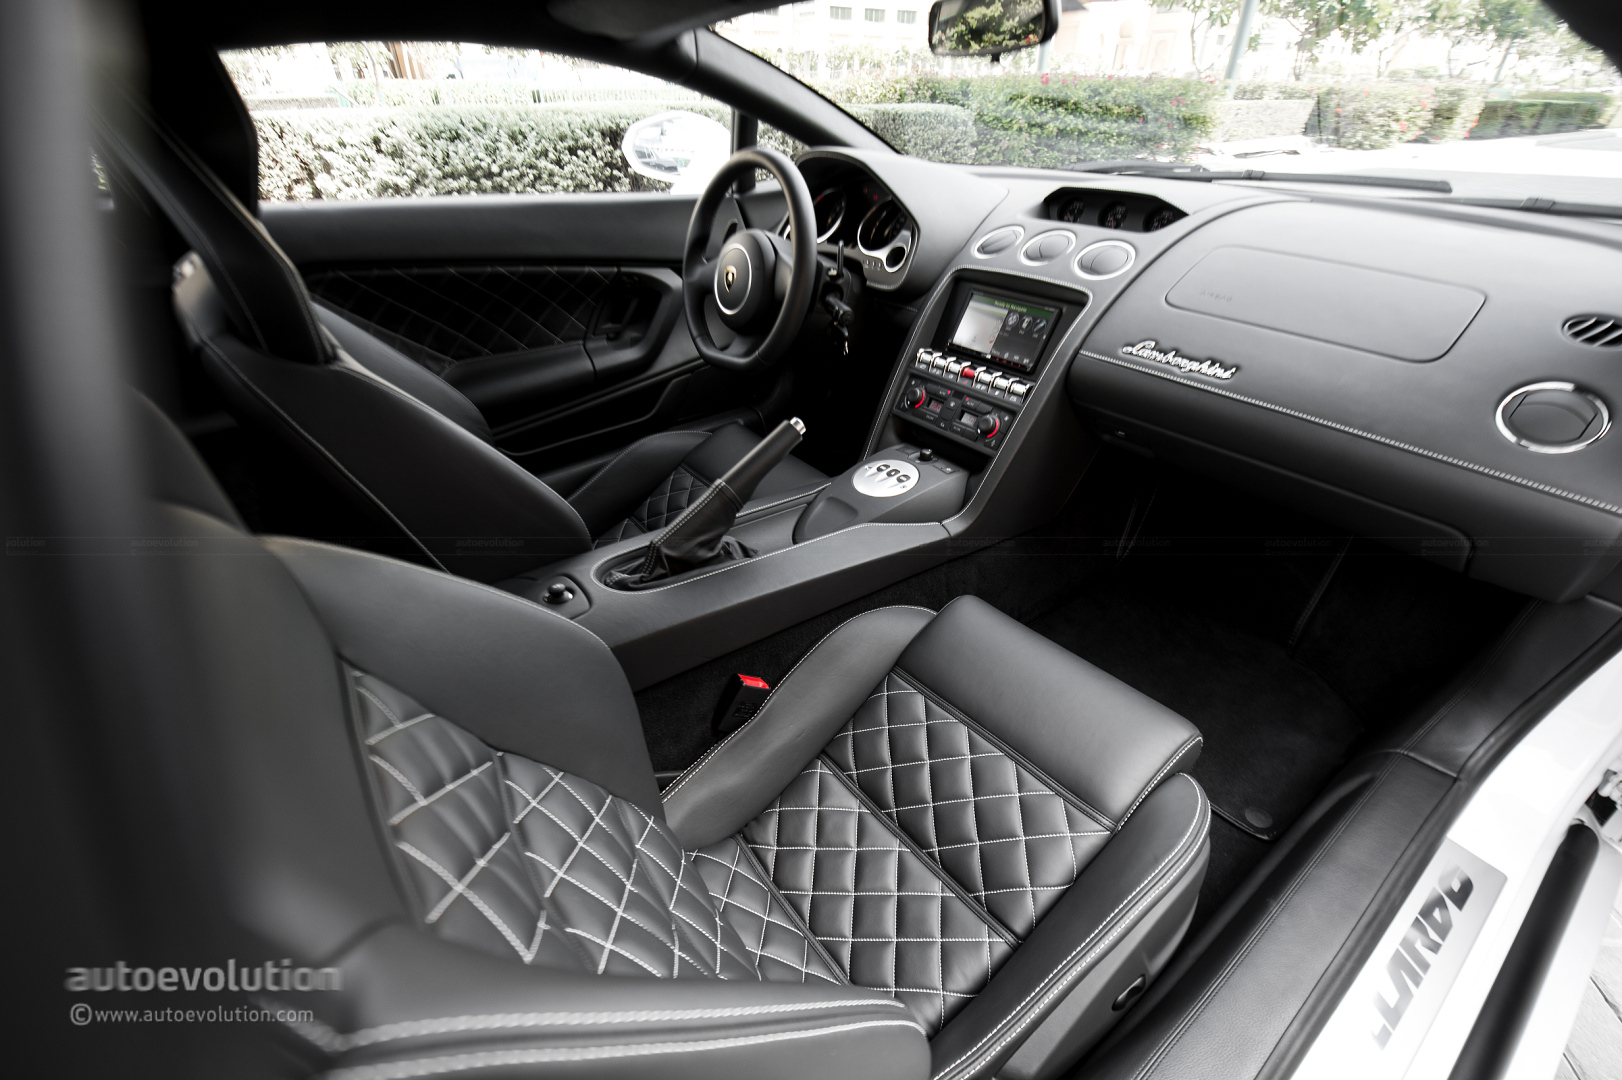 2013 Lamborghini Gallardo Lp570 4 Performante Exterior Interior